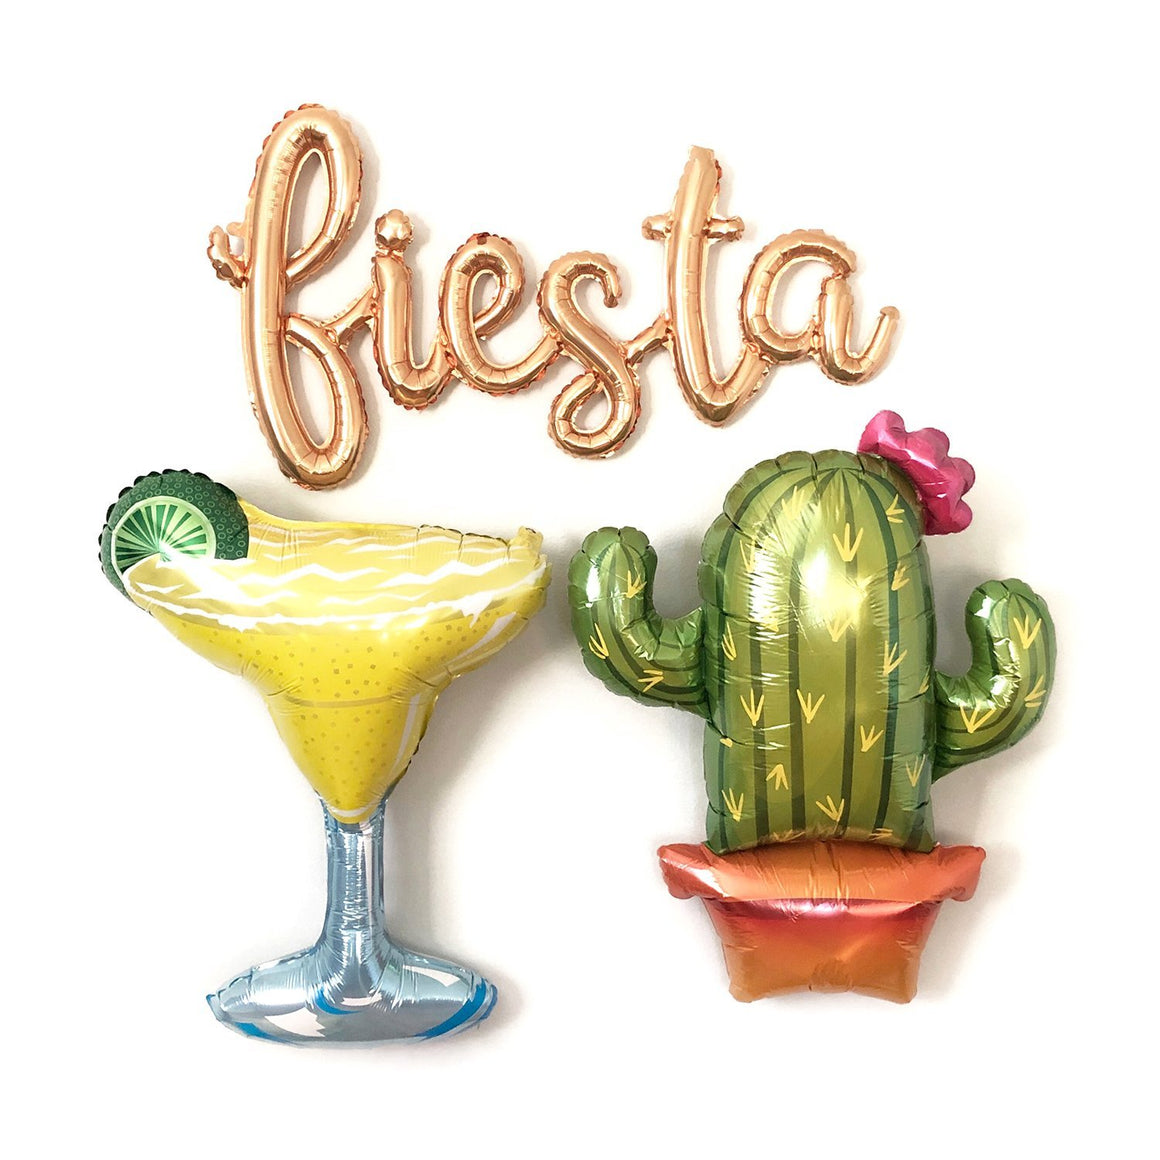 Fiesta, Margarita & Cactus Balloons - Pretty Collected